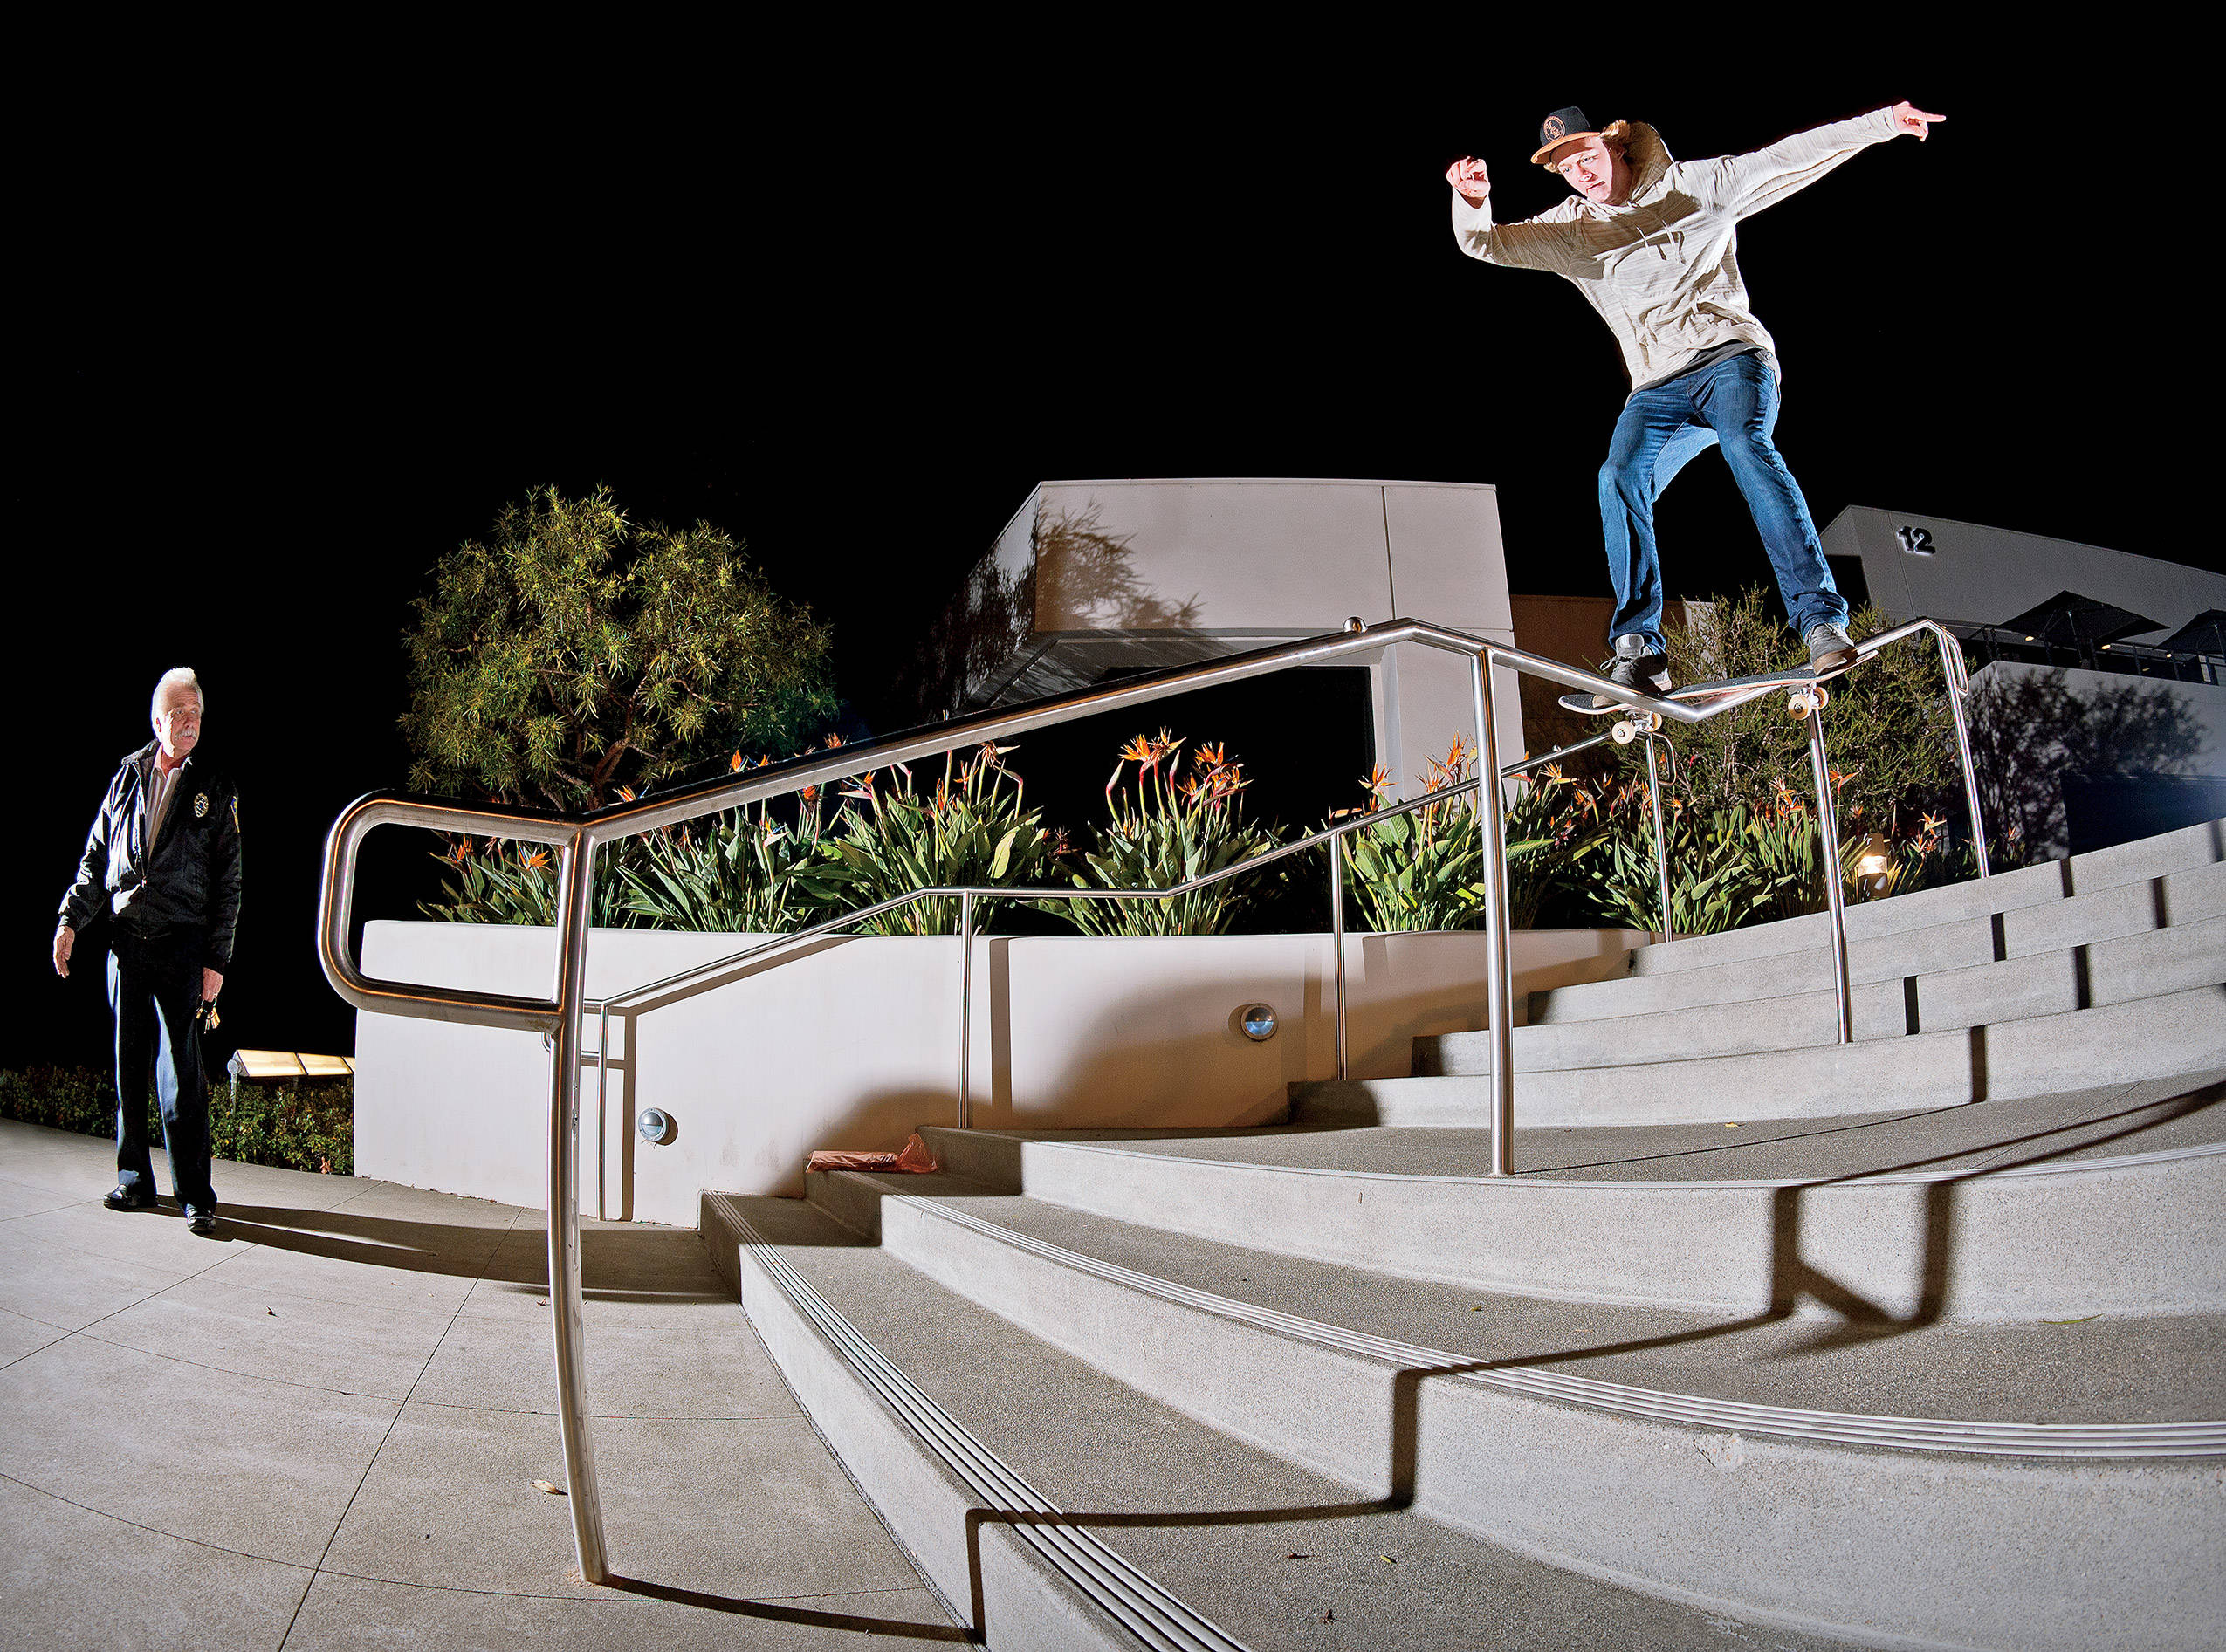 alec majerus new jack the skateboard mag